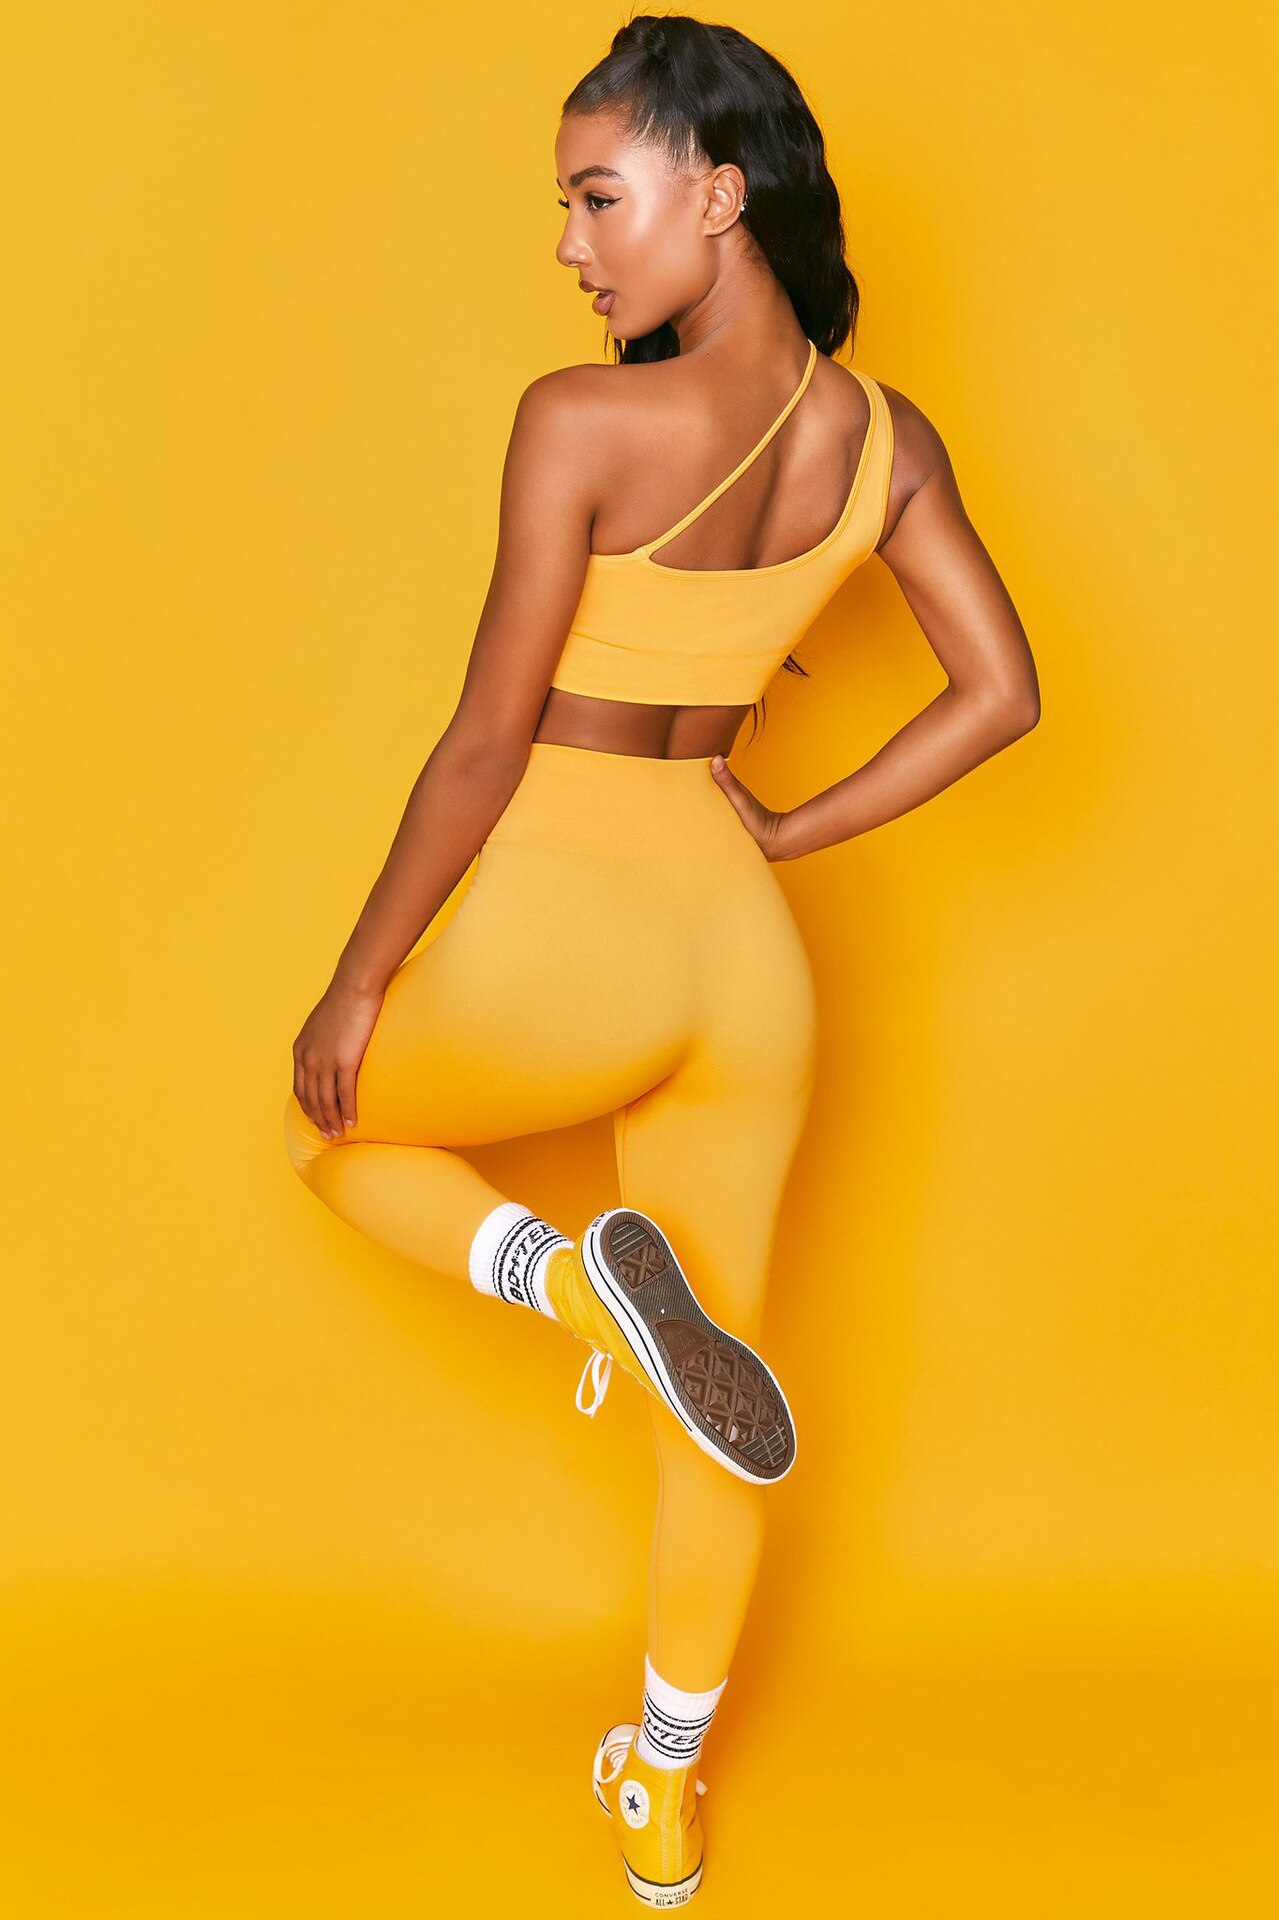 CXUEY Sling Yoga Fitness Wear Women Sportswear Gym Clothing Solid Workout Clothes for Women Sports Kit Jogging Tracksuit Yellow